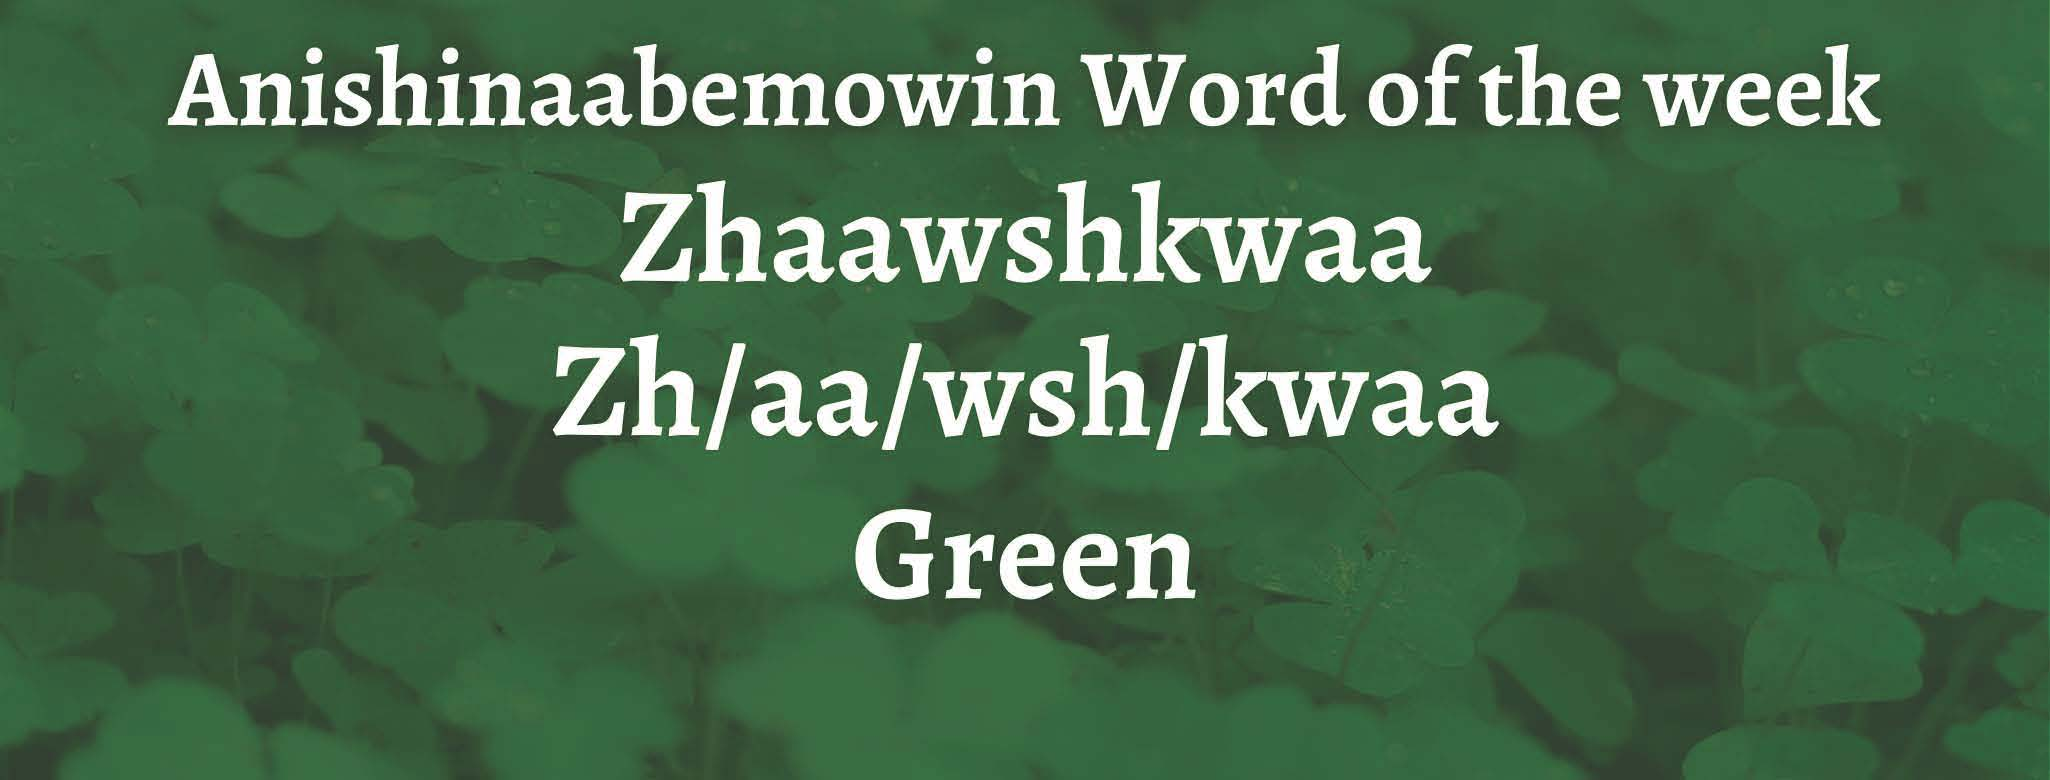 Anishinaabemowin Word of the week Zhaawshkwaa Green